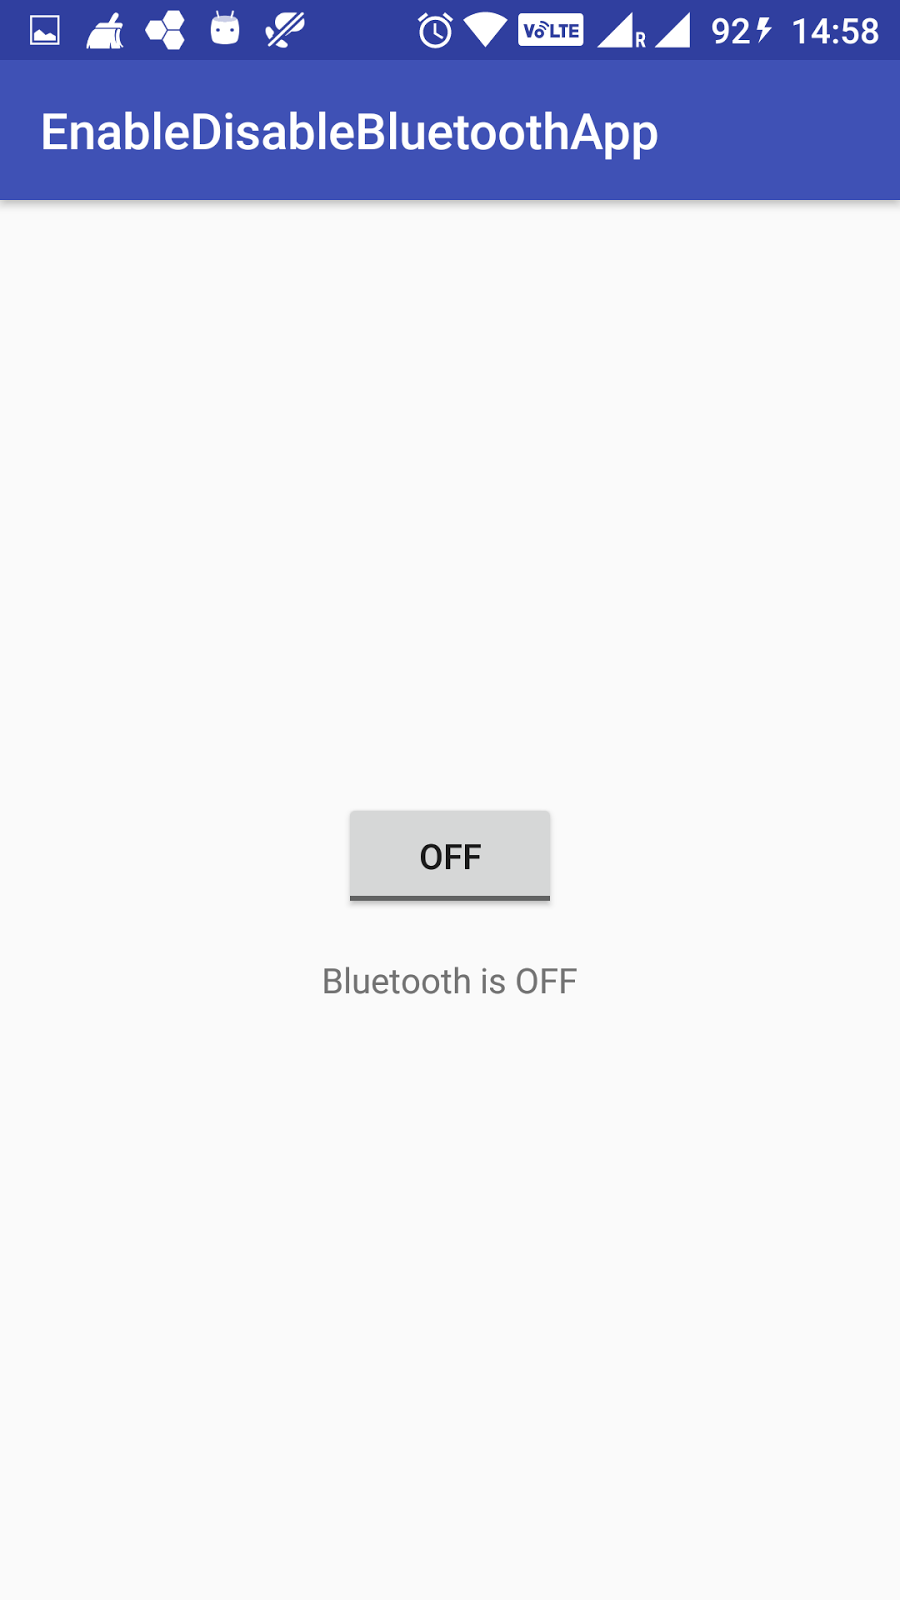 How to enable or disable Bluetooth in android